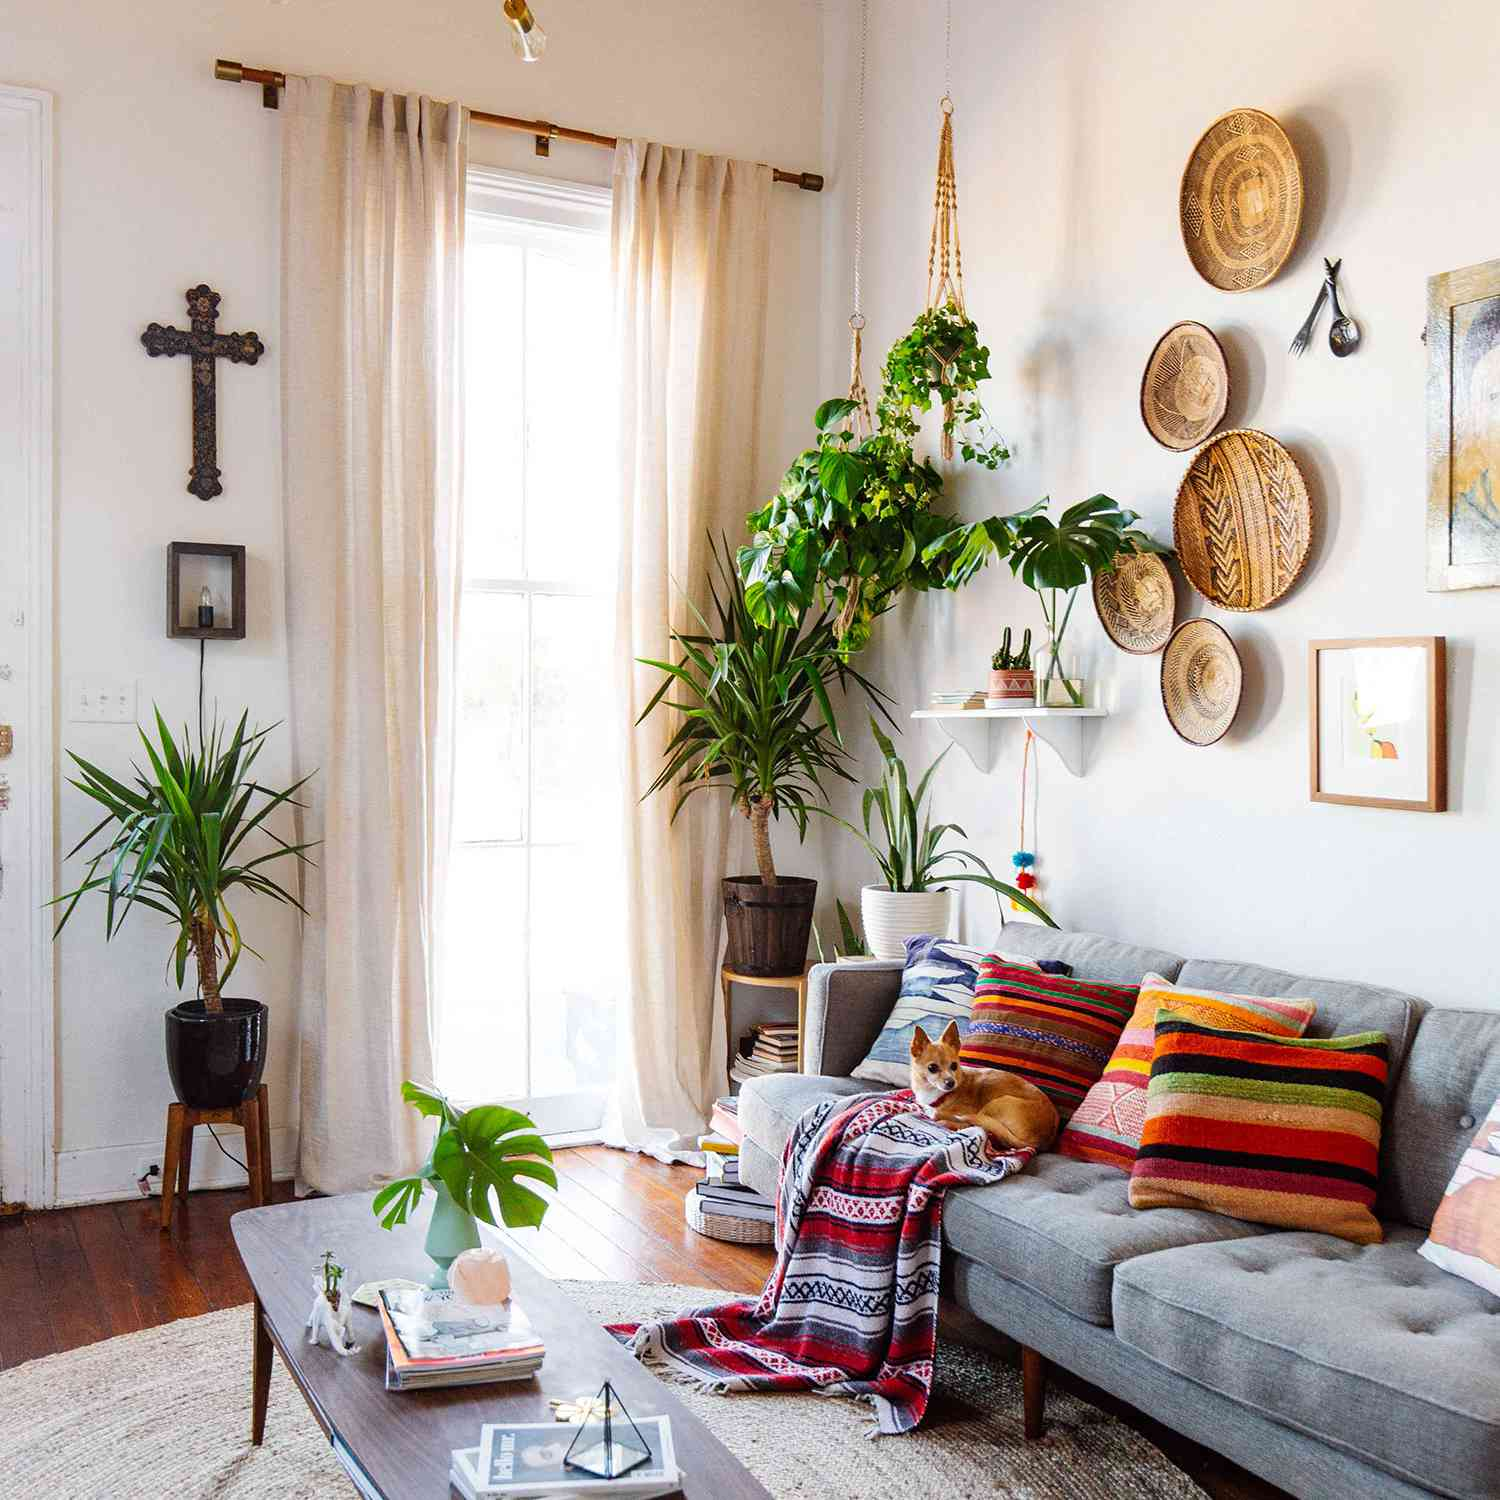 white living room with basket gallery wall and blue couch